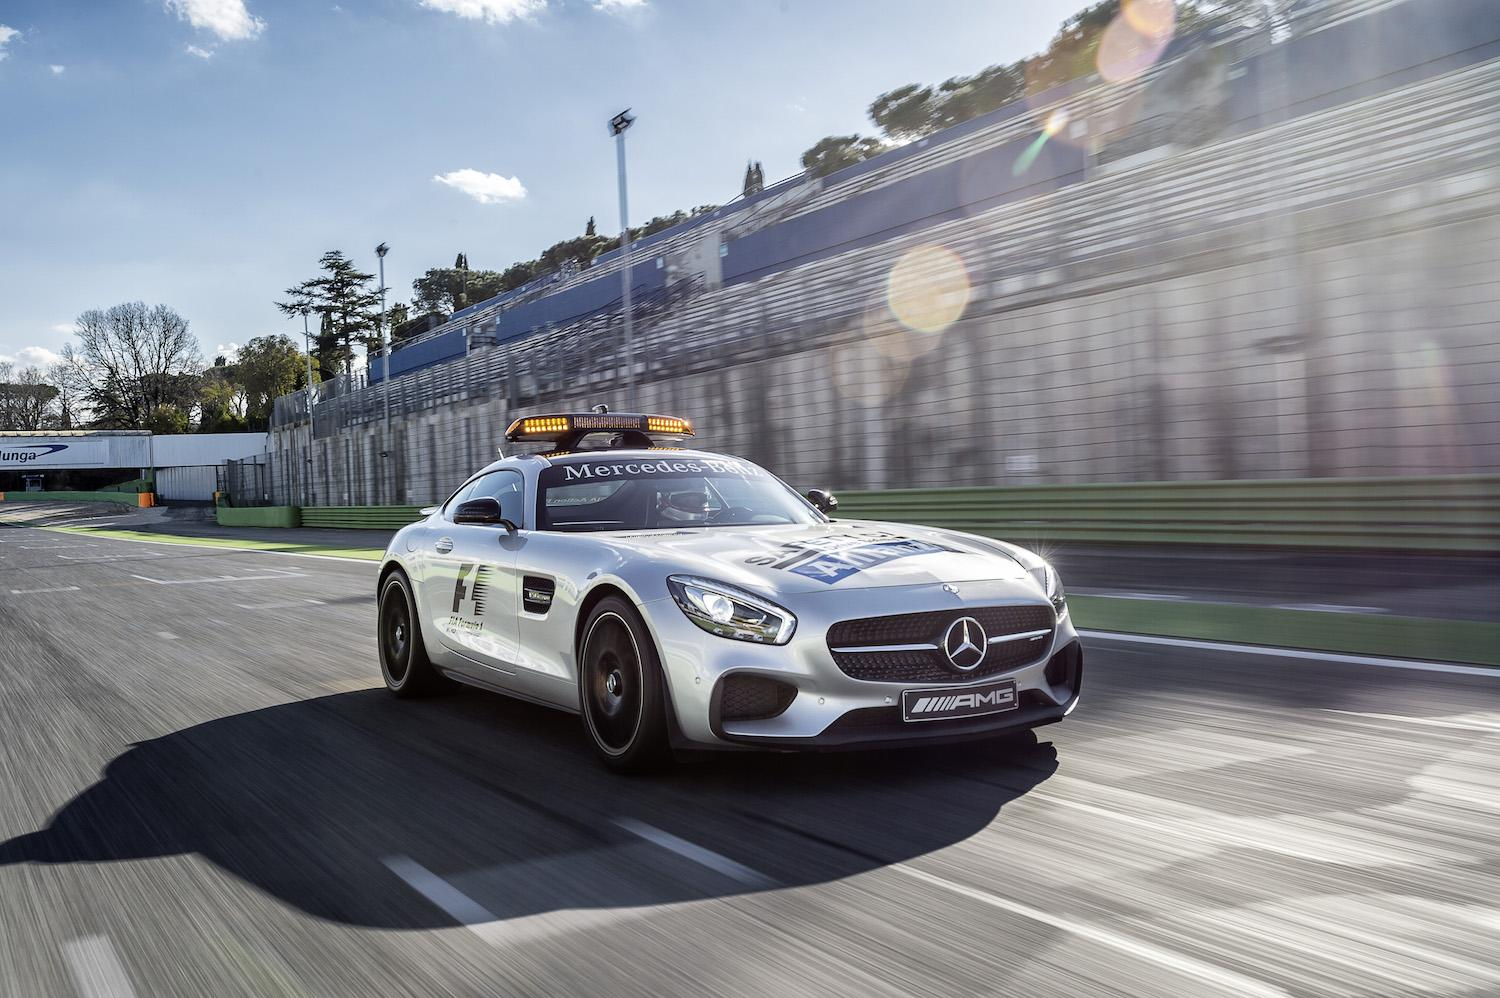 Safety car driver 4